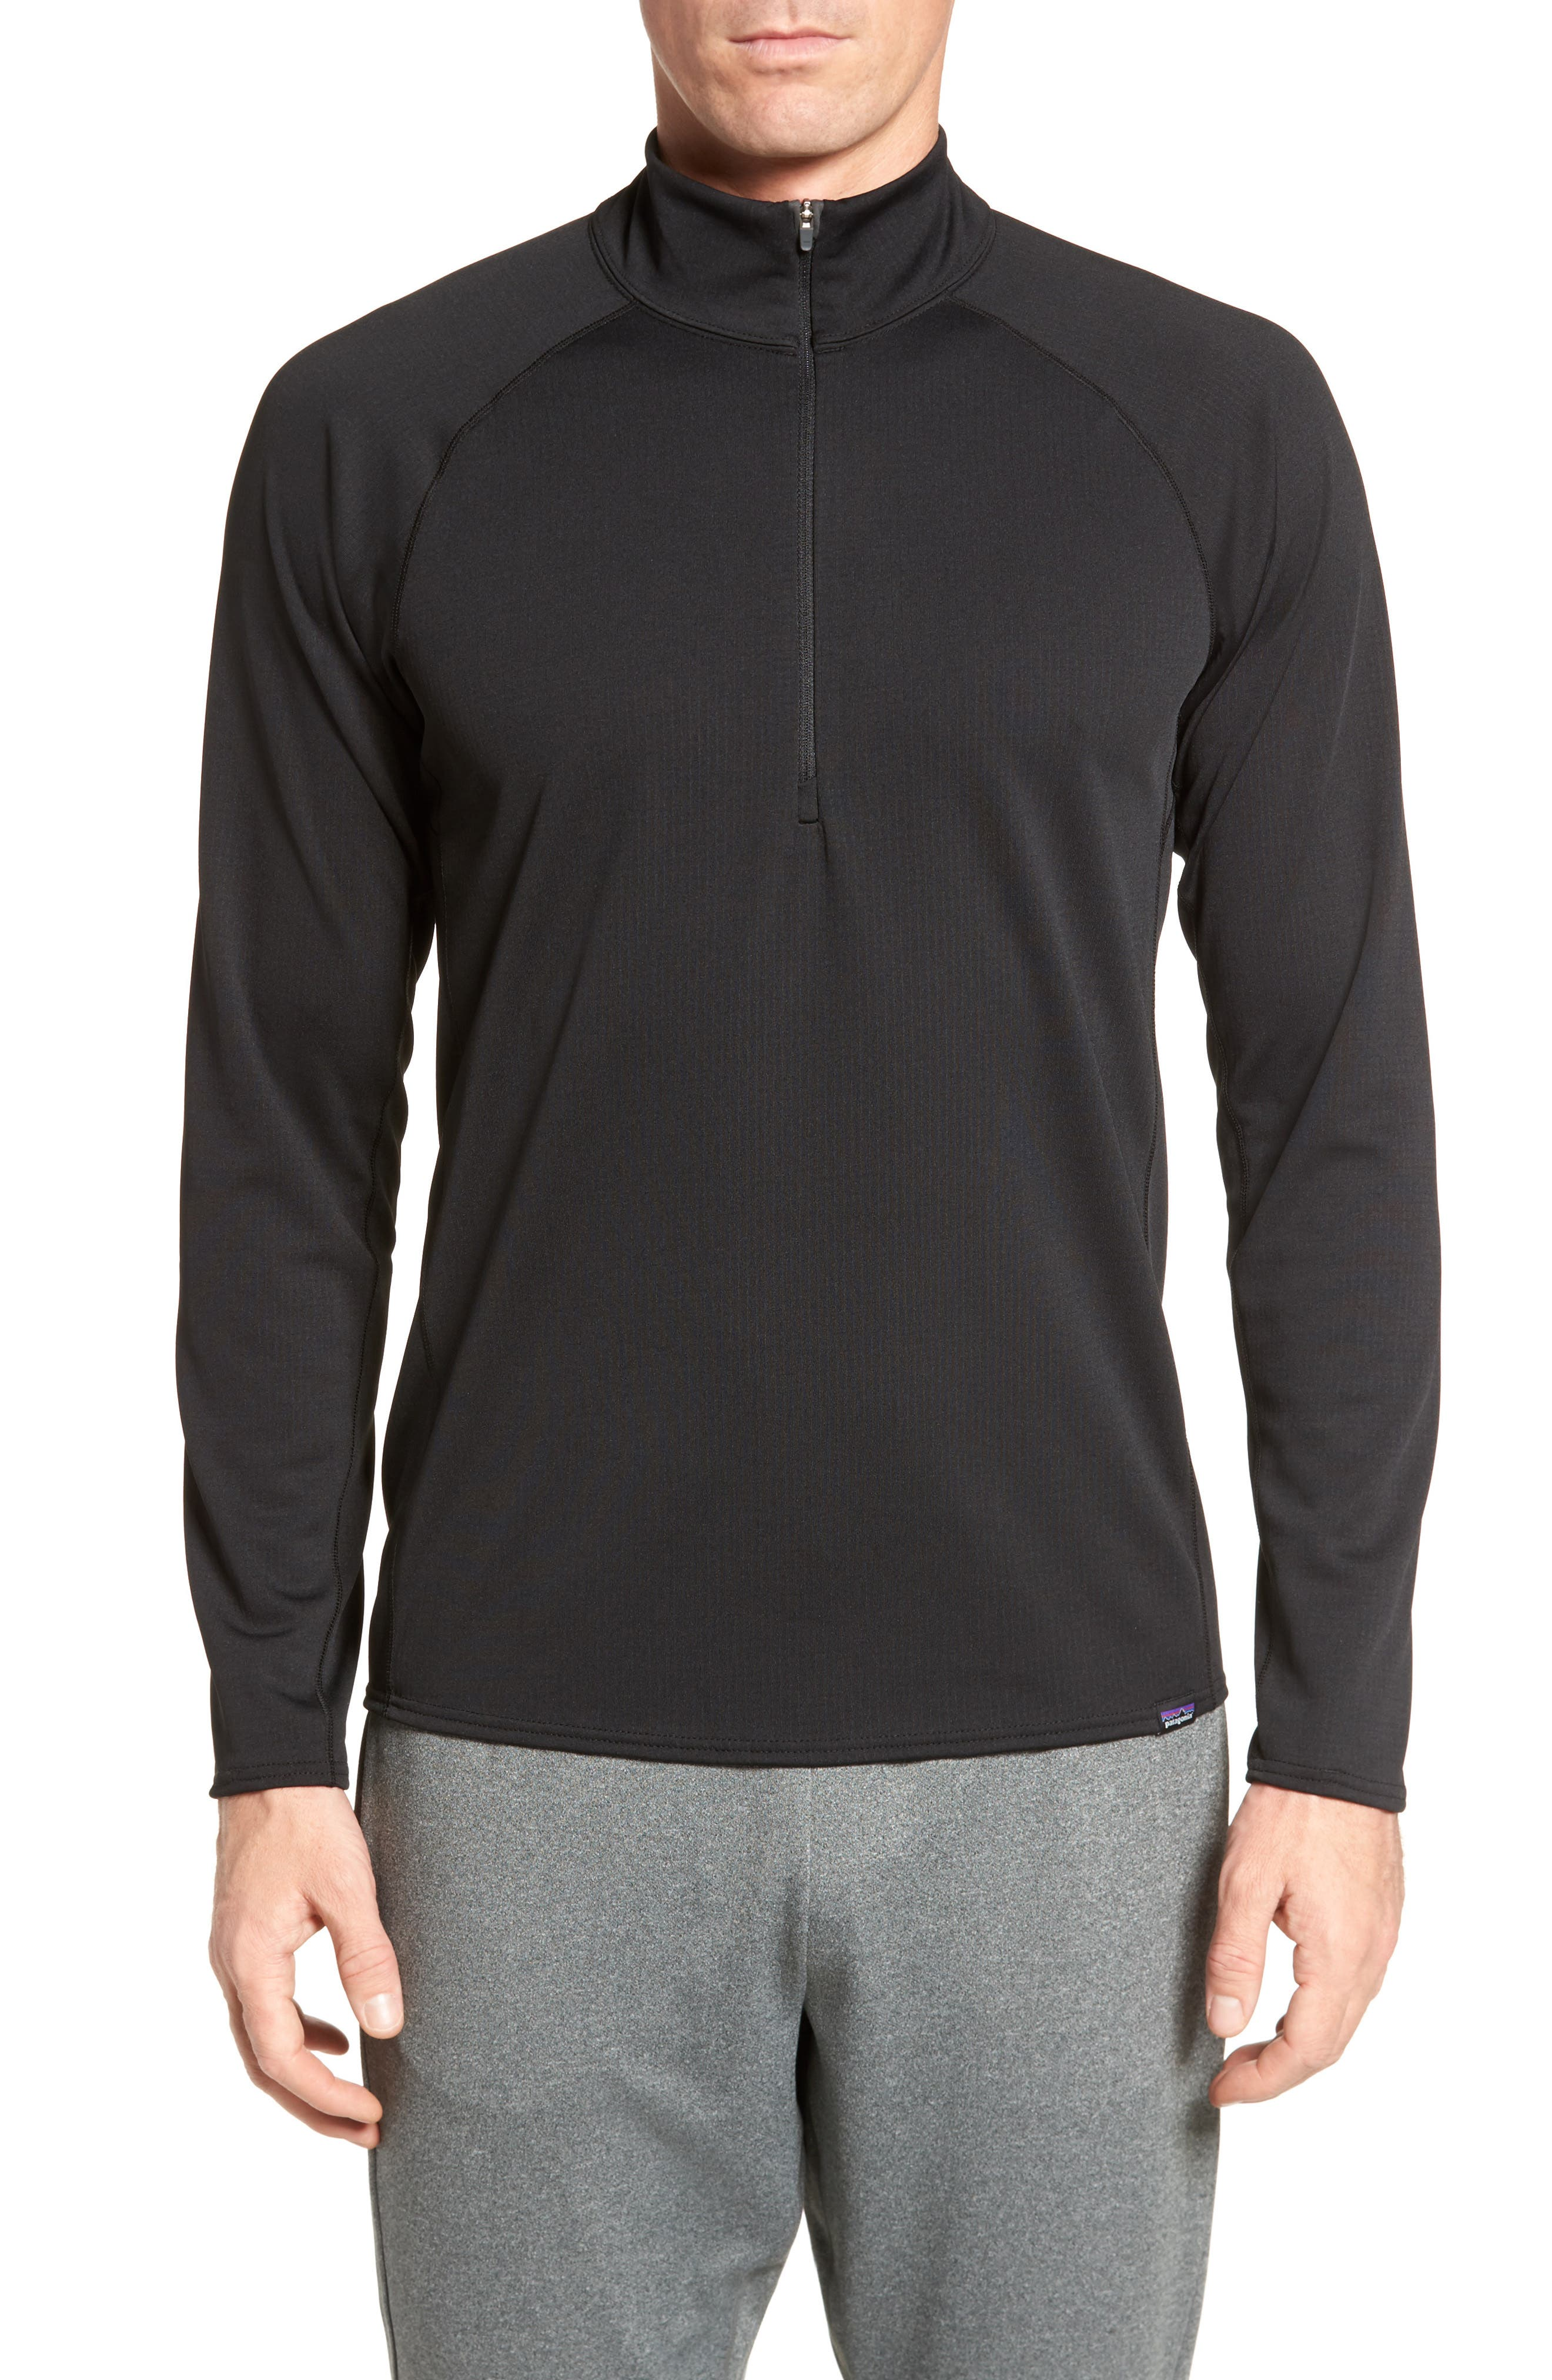 Capilene Midweight Pullover,                         Main,                         color, Black